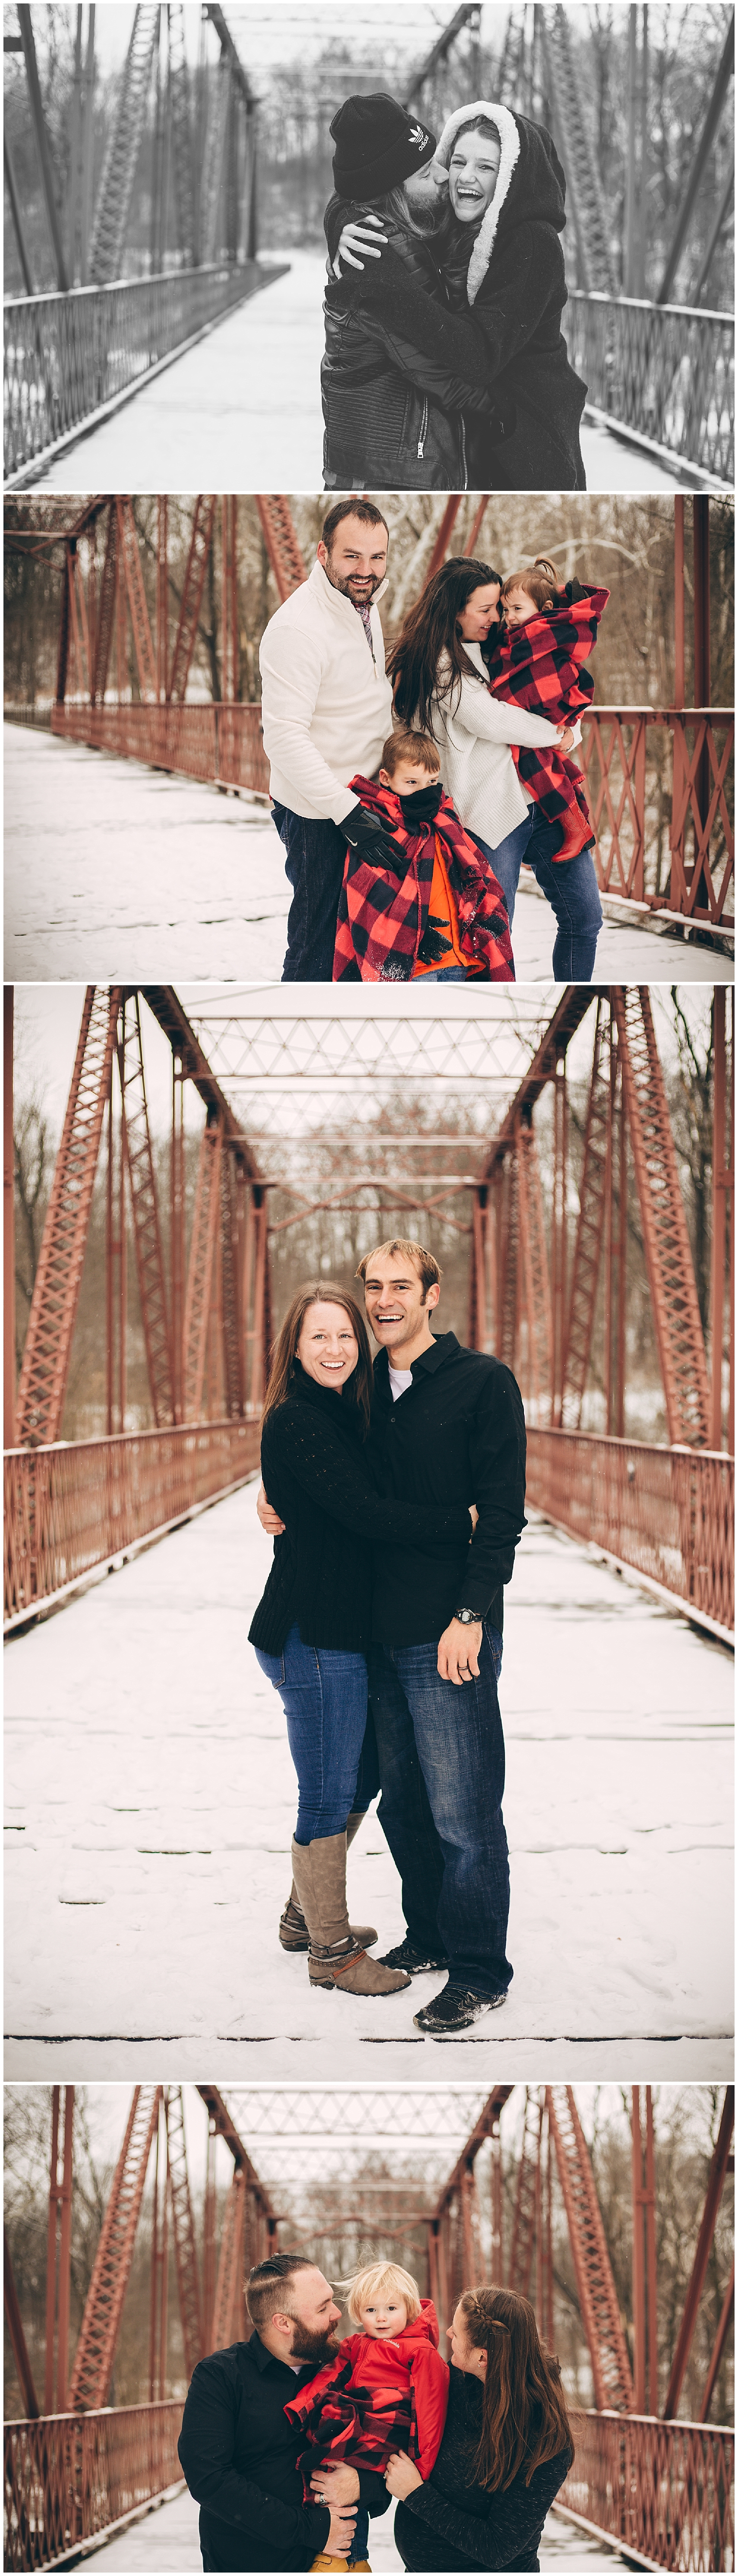 Indianapolis_Extended_Family_Photography_Winter_Session4